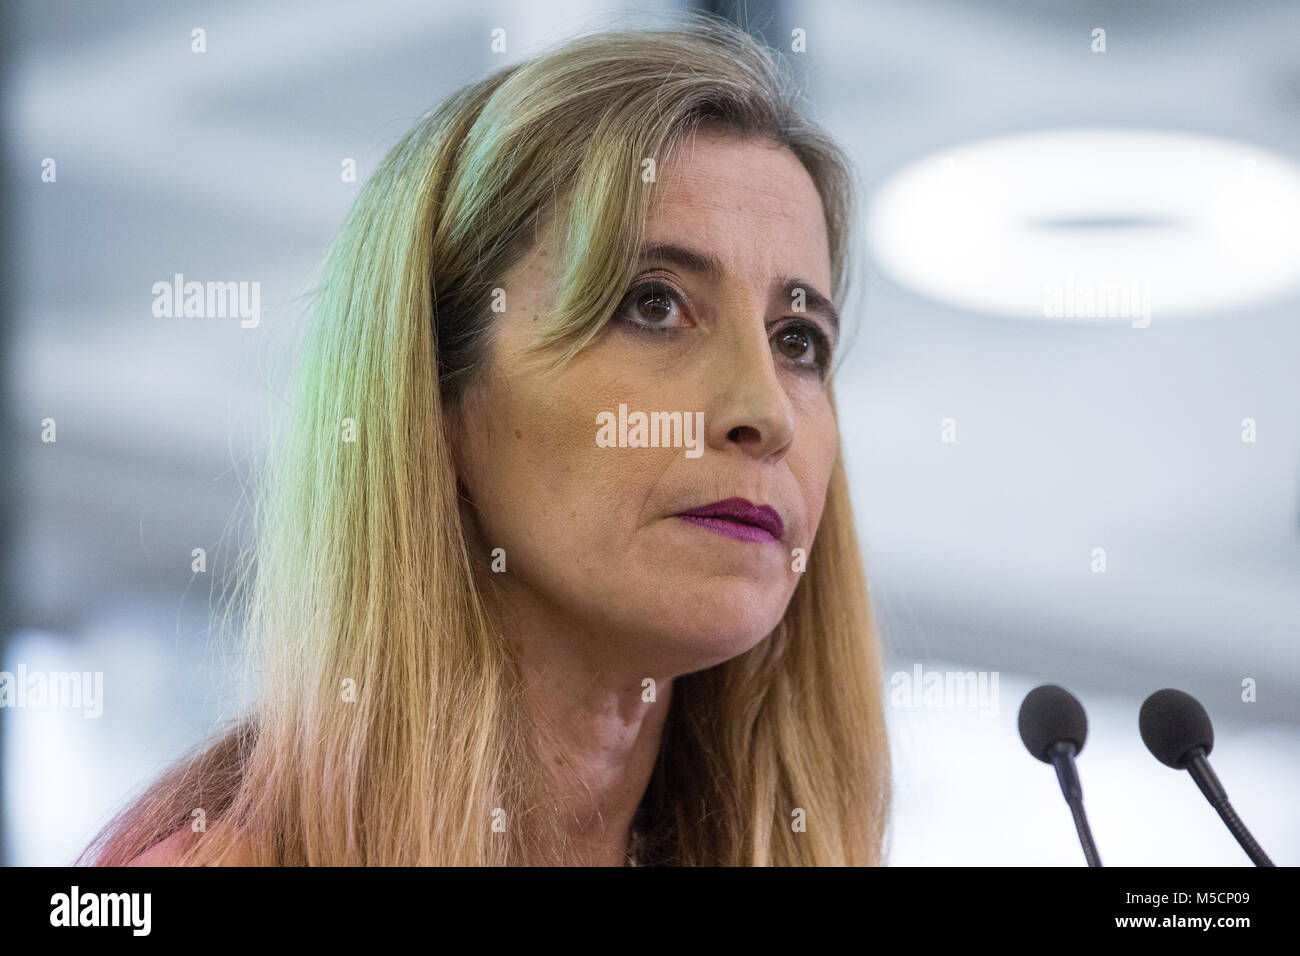 London, UK. 19th February, 2018. Sandra Khadhouri, Head of Communications, speaks at the launch of the Renew Political - Stock Image